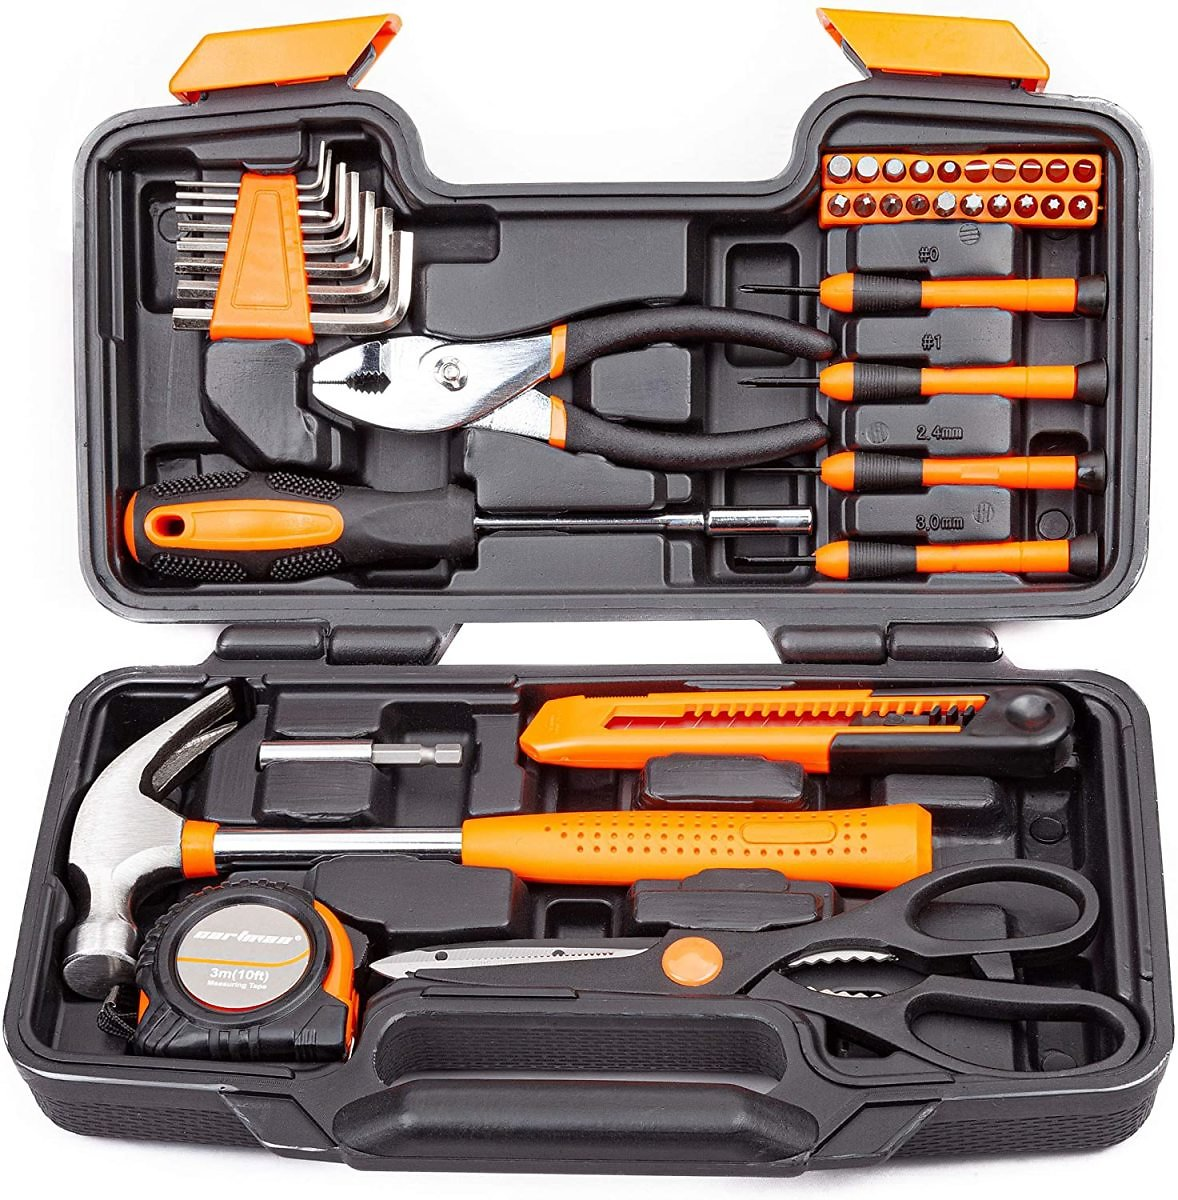 Zimtown 39-Piece Home Use Hand Tool Set, General Household Hand Tool Kit, with Plastic Toolbox Storage Case, Orange